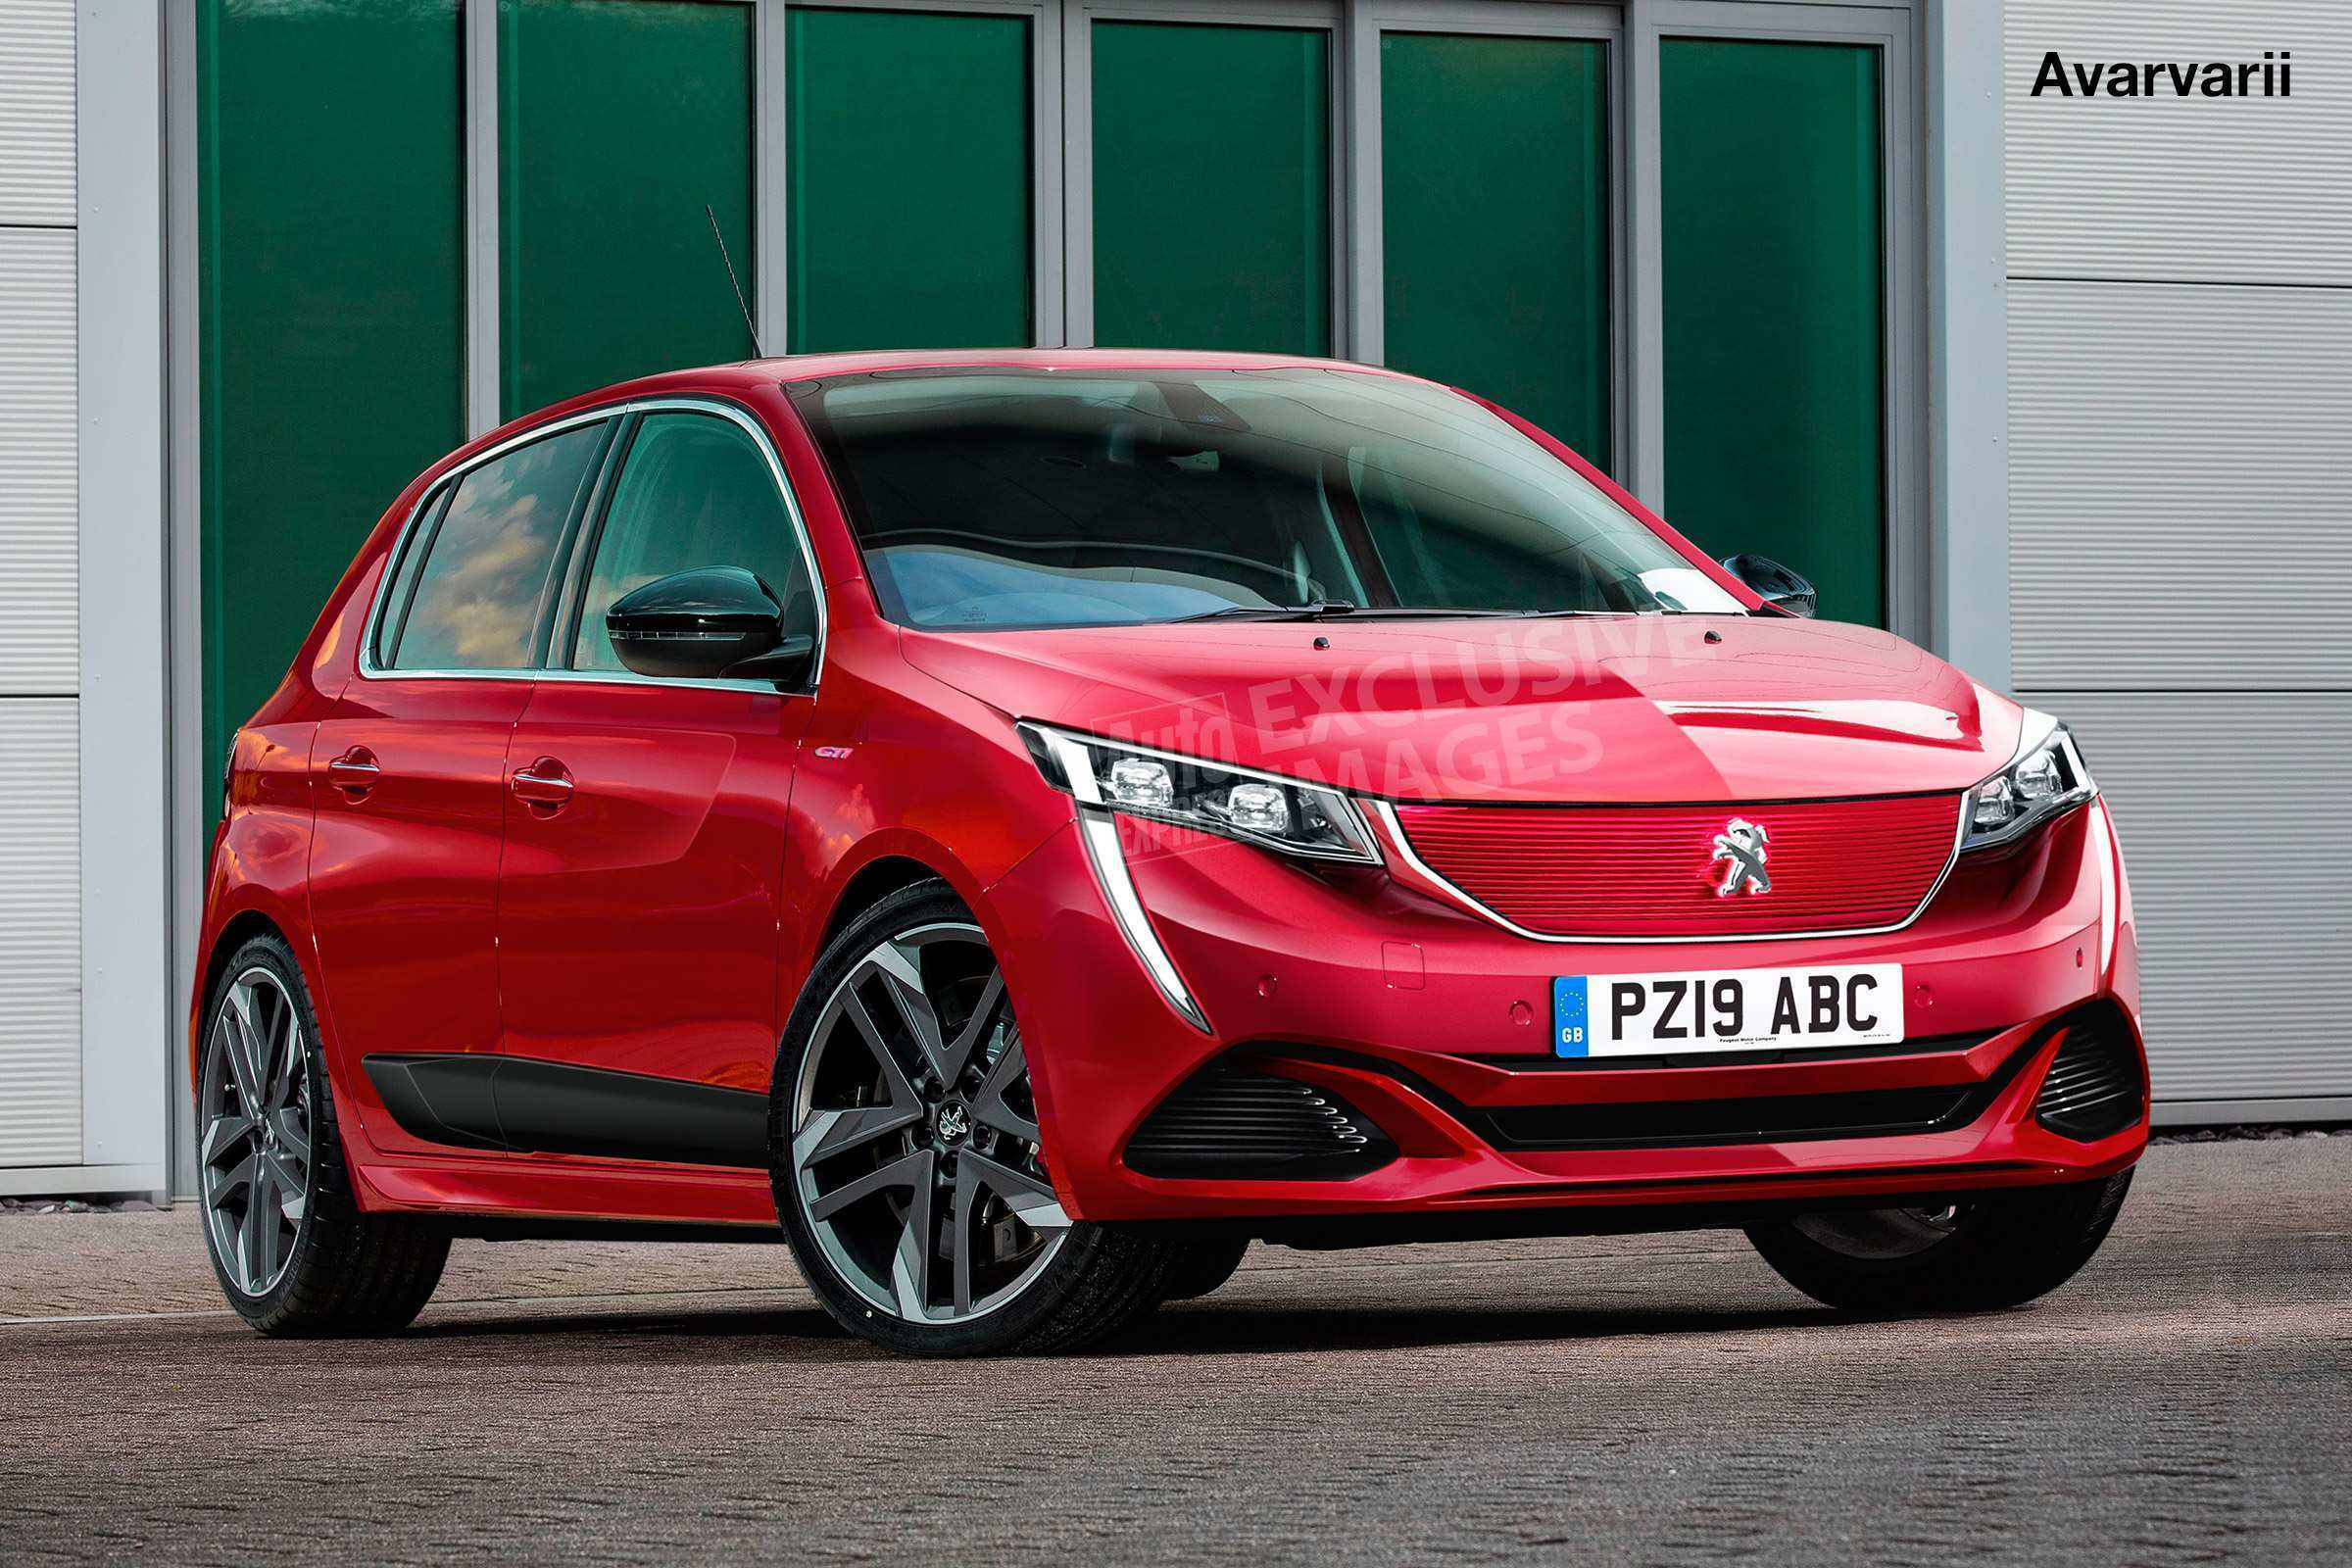 44 New 2019 Peugeot 308 Gti First Drive by 2019 Peugeot 308 Gti